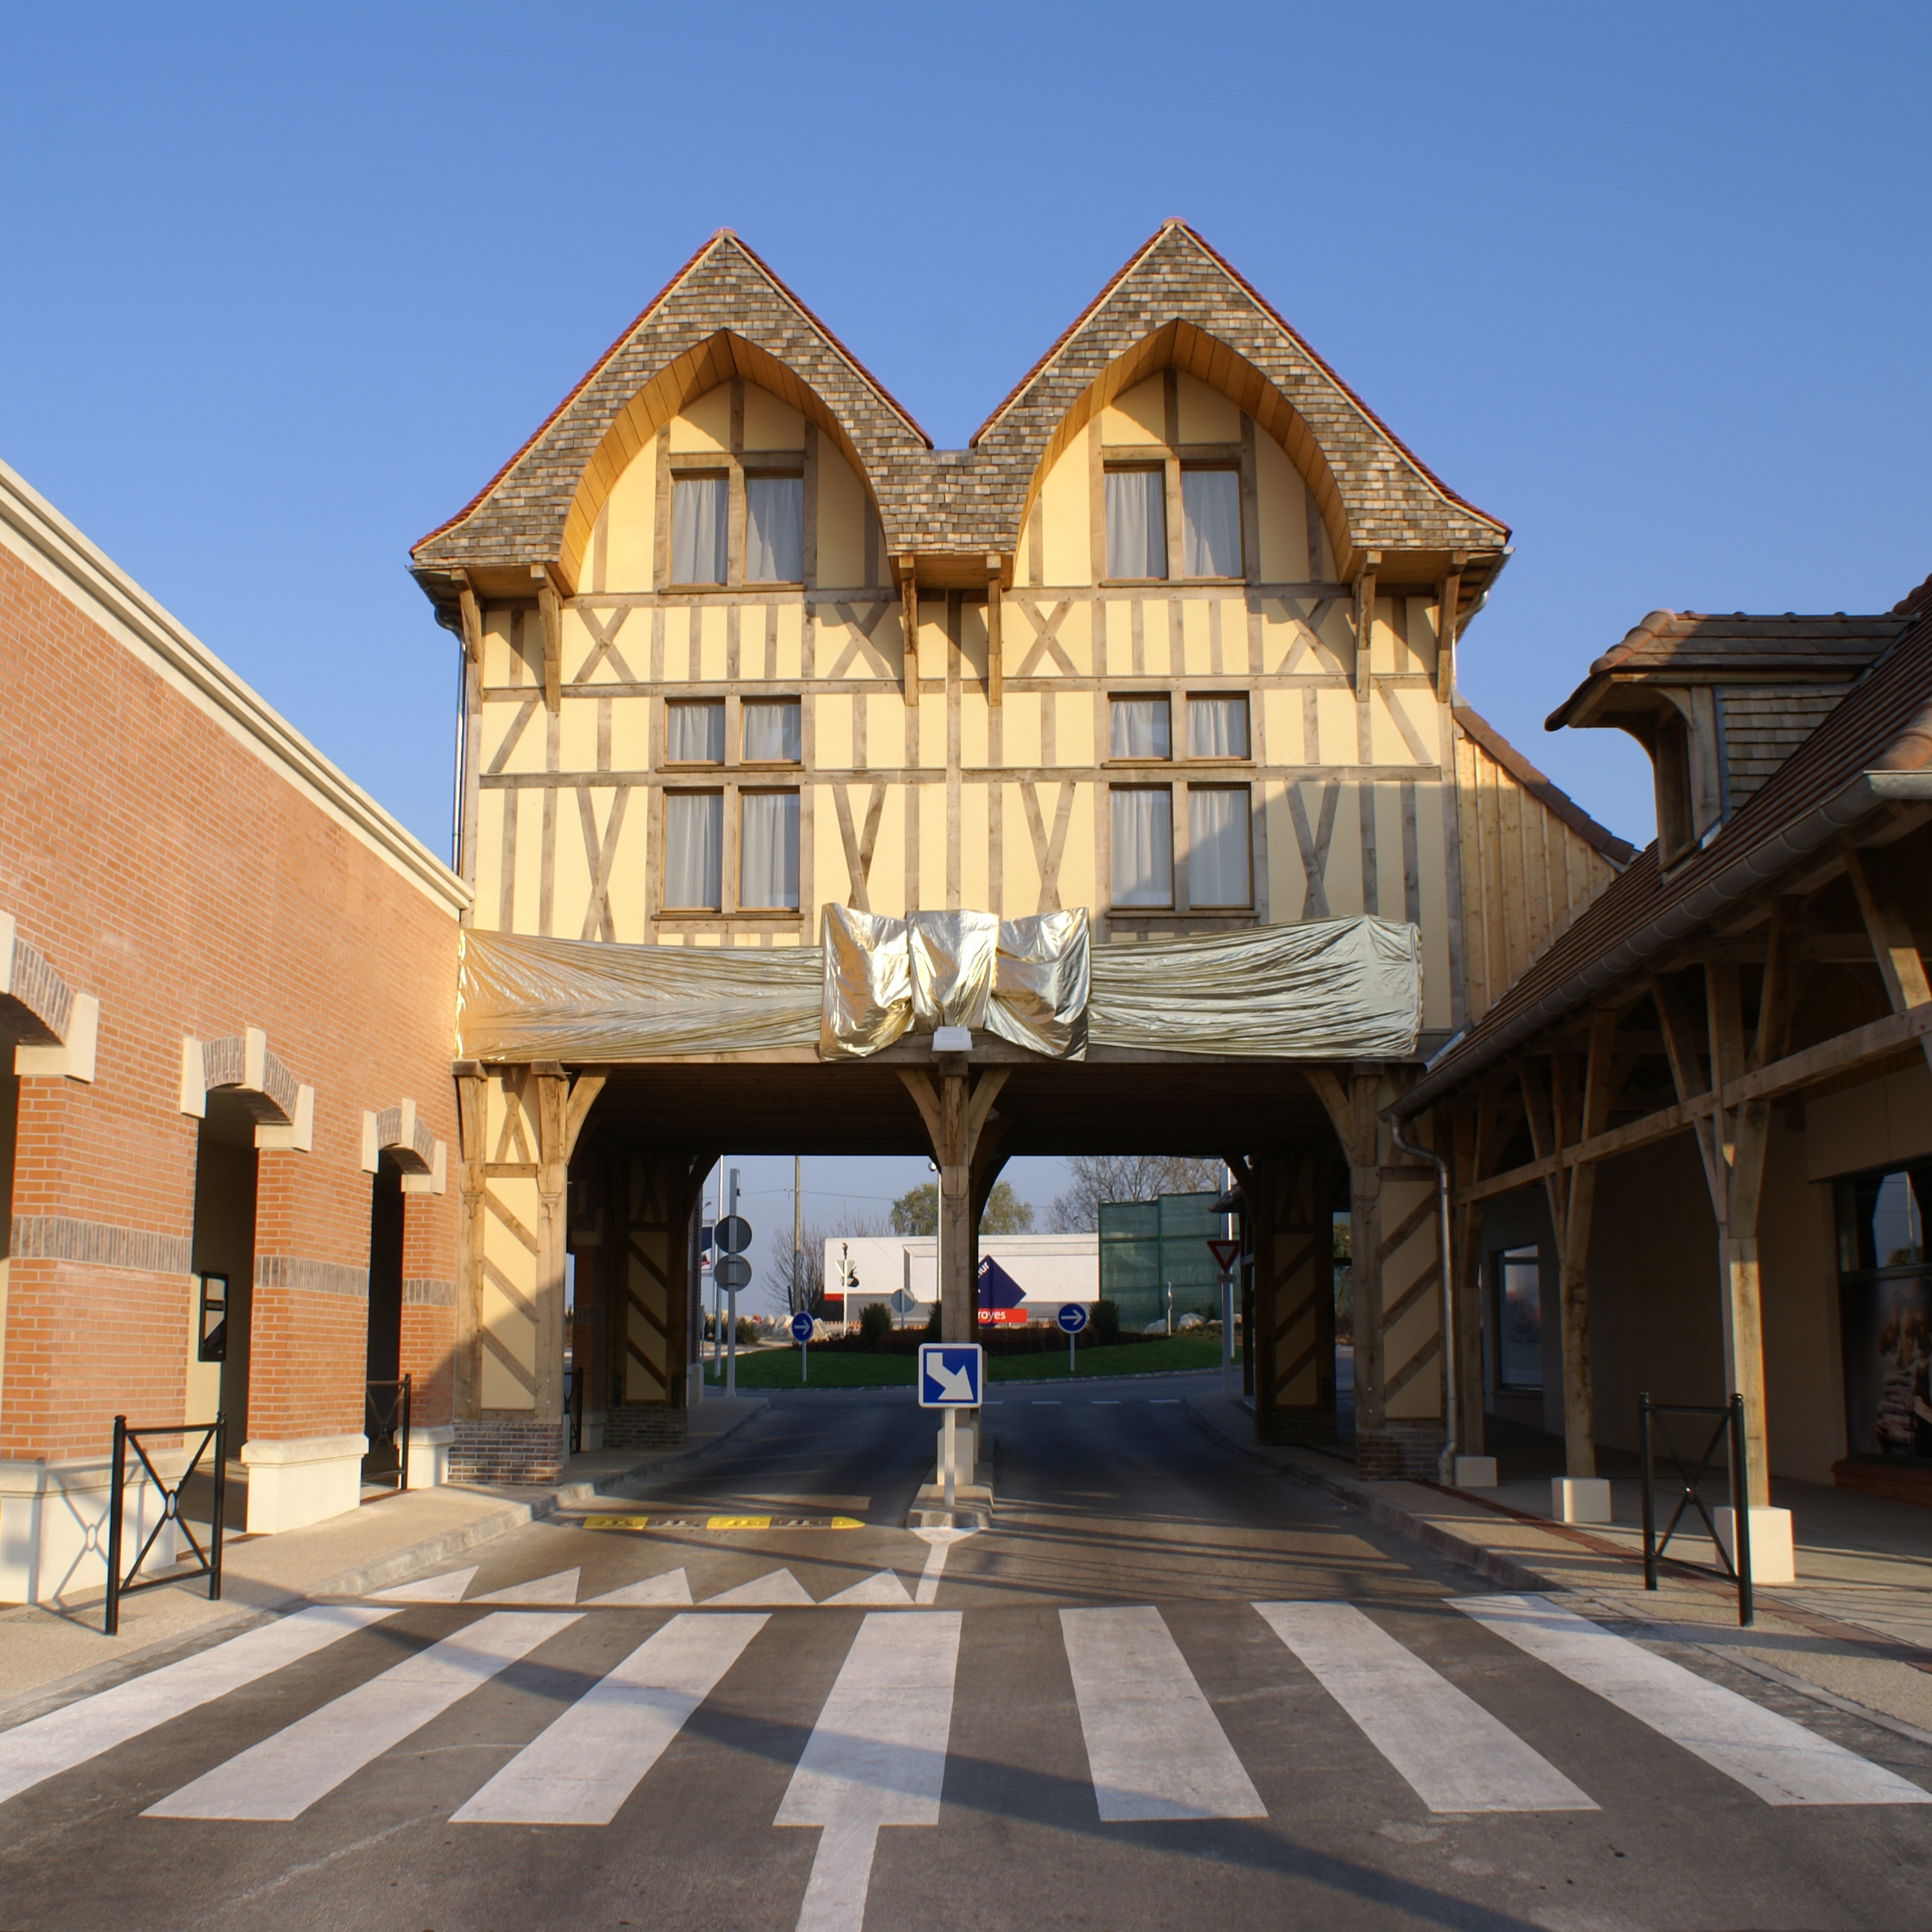 Factory Outlet Center, Troyes